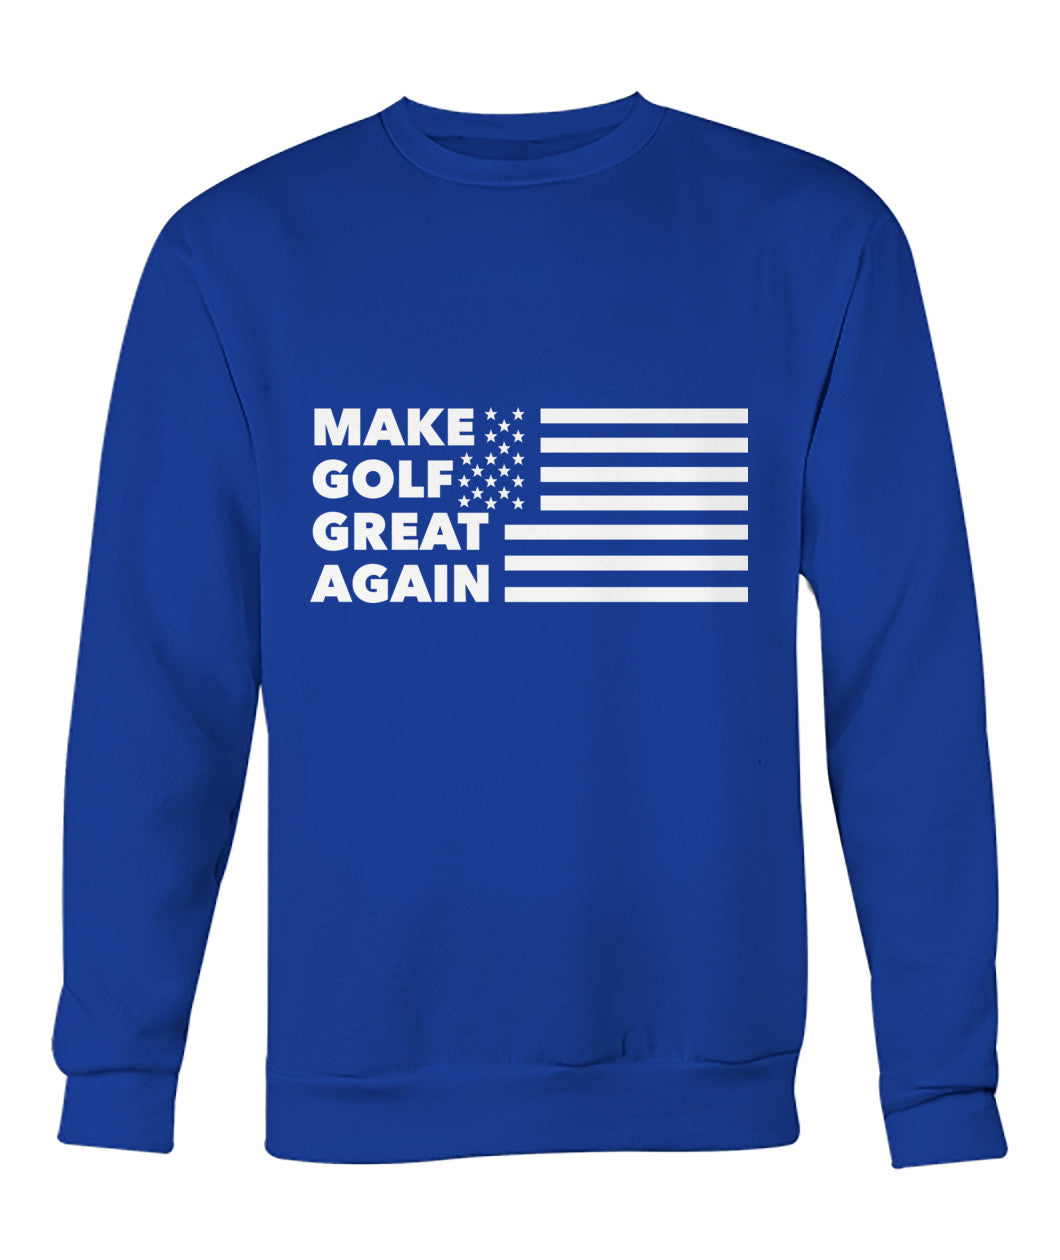 Make Golf Great Again Crew Neck Sweatshirt-Long Sleeves - AllGolfUSA.COM